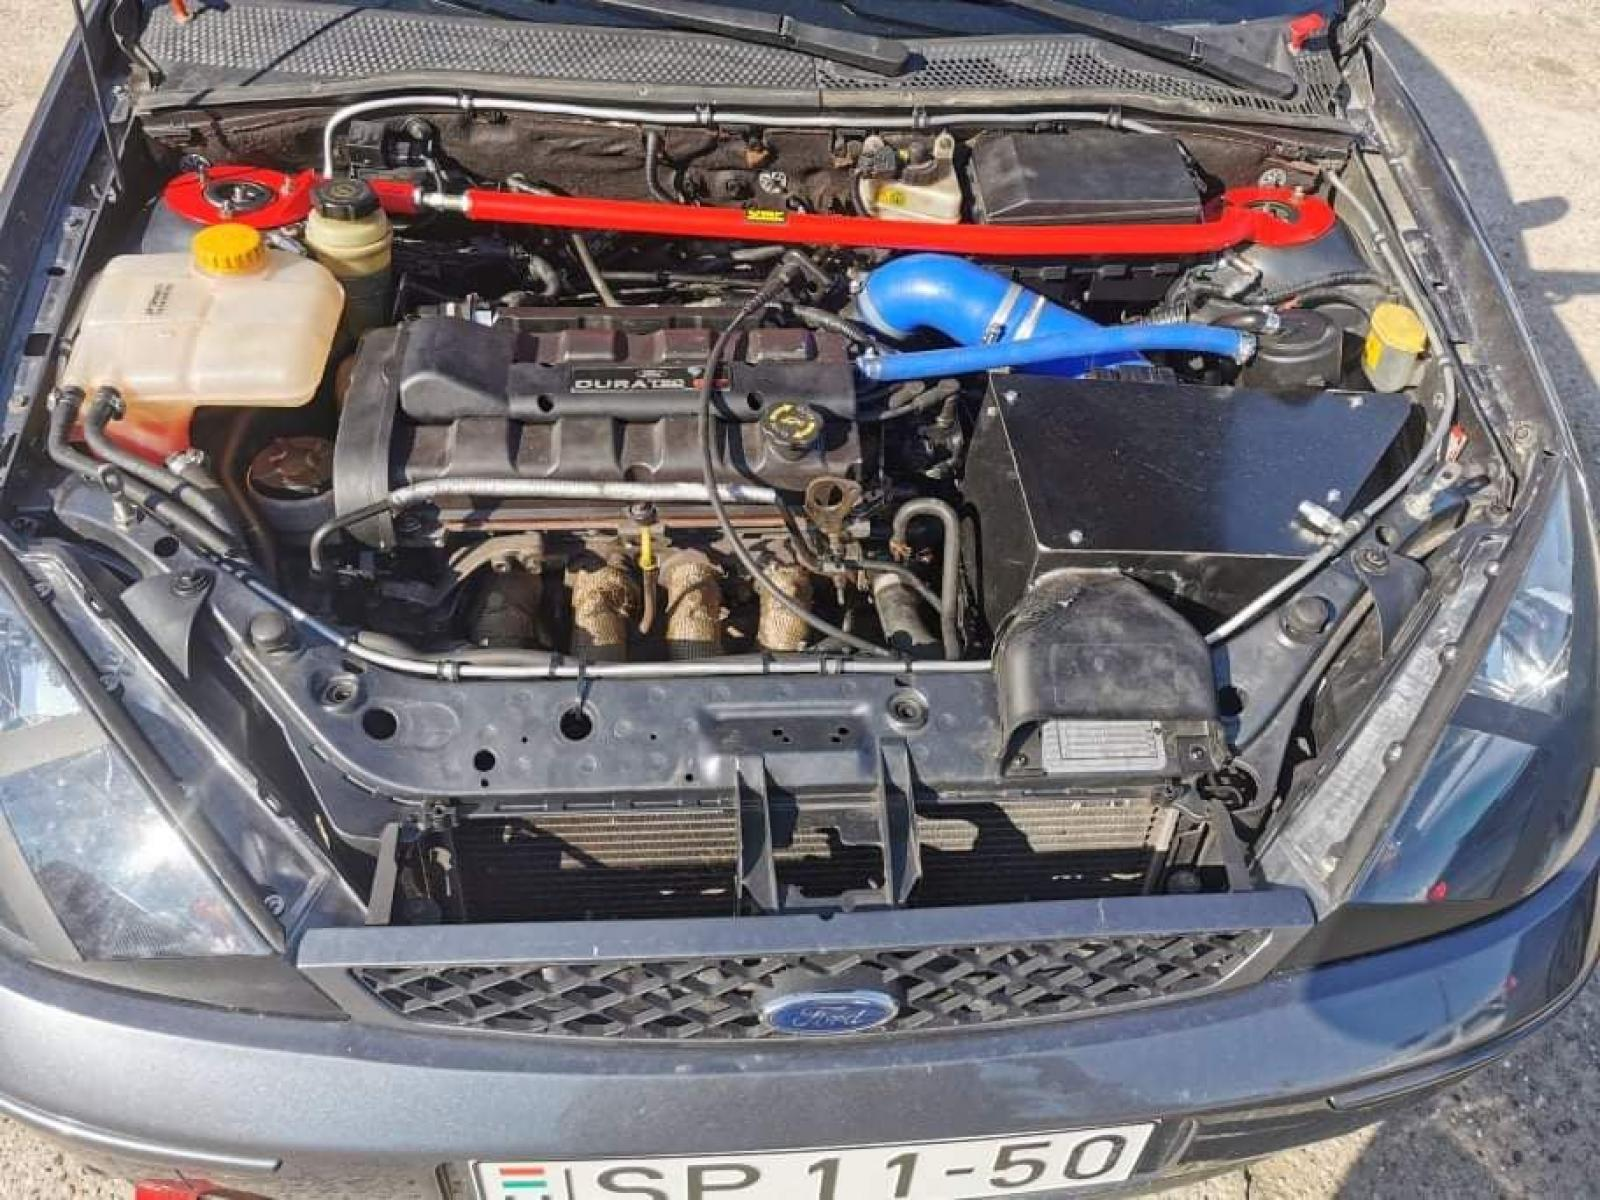 Ford Focus St 170 - 5